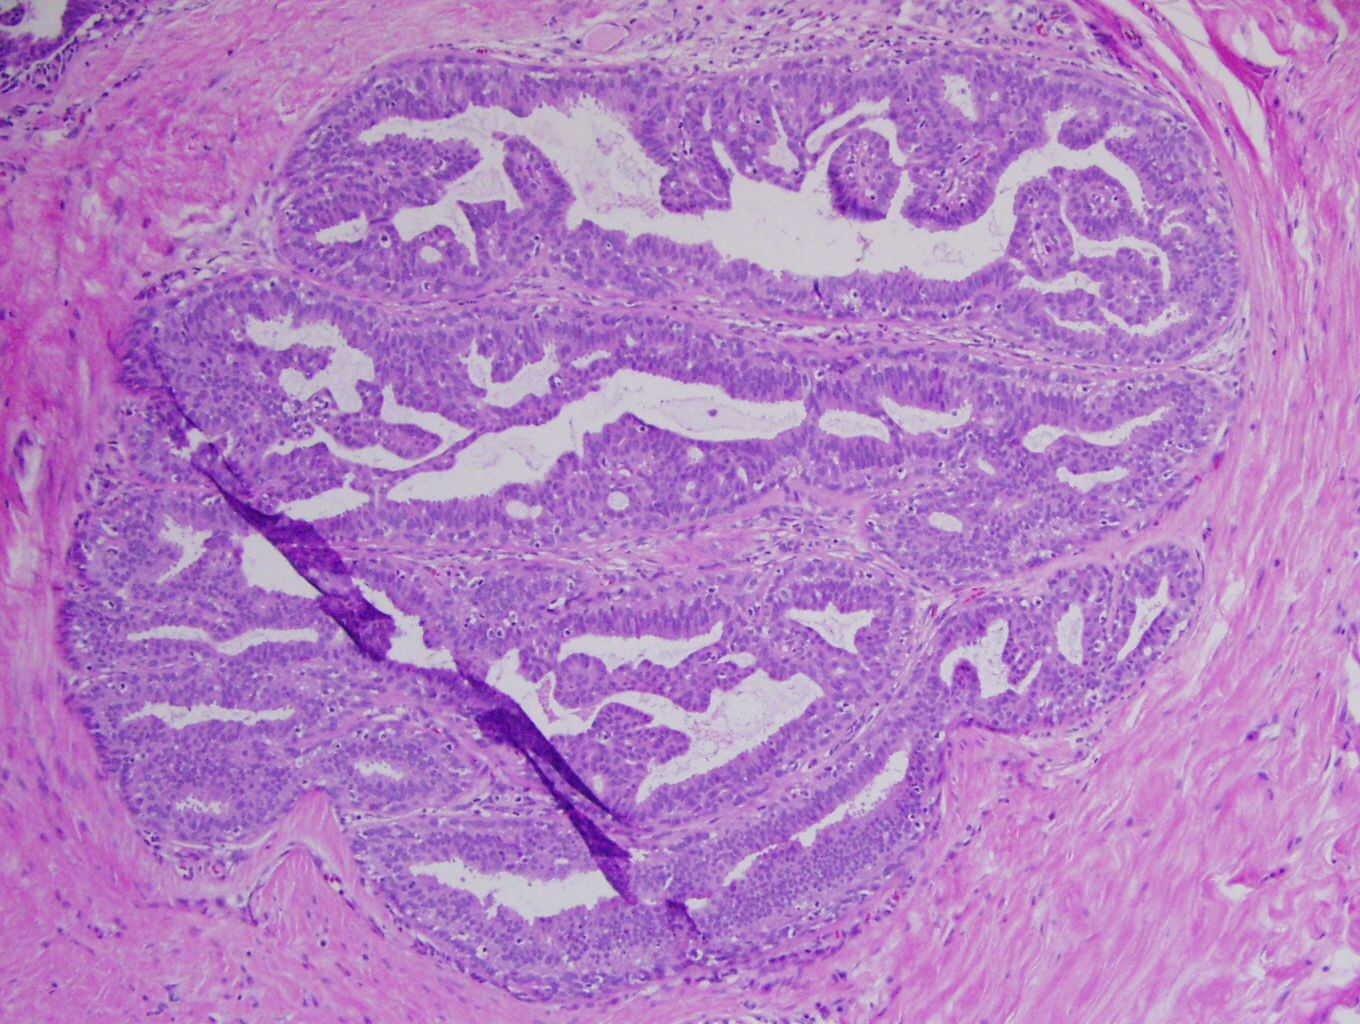 malignant ductal papilloma